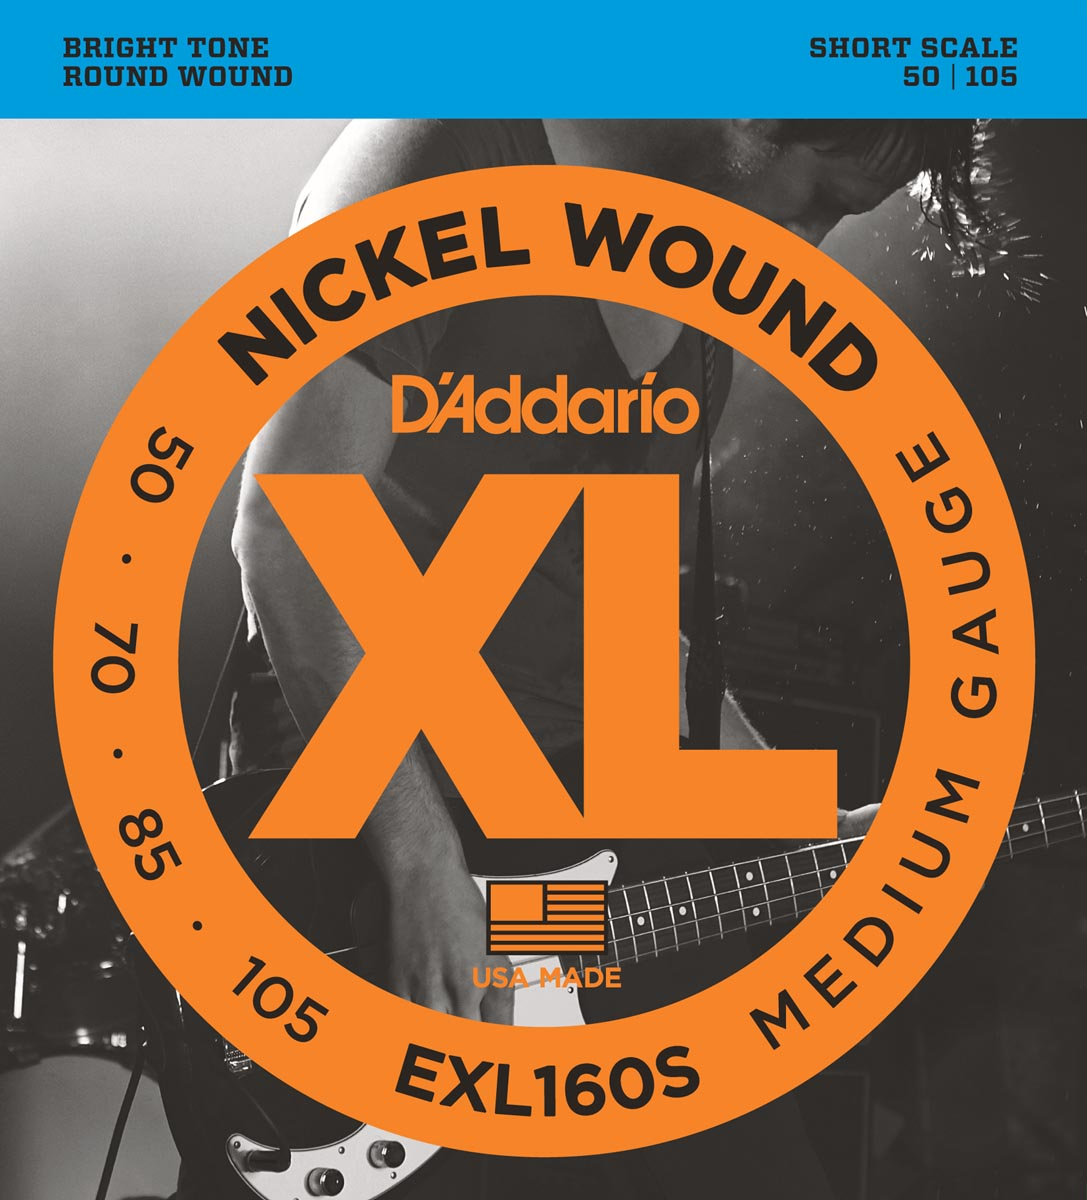 DADDARIO EXL160S MEDIUM SHORT SCALE [50-105]